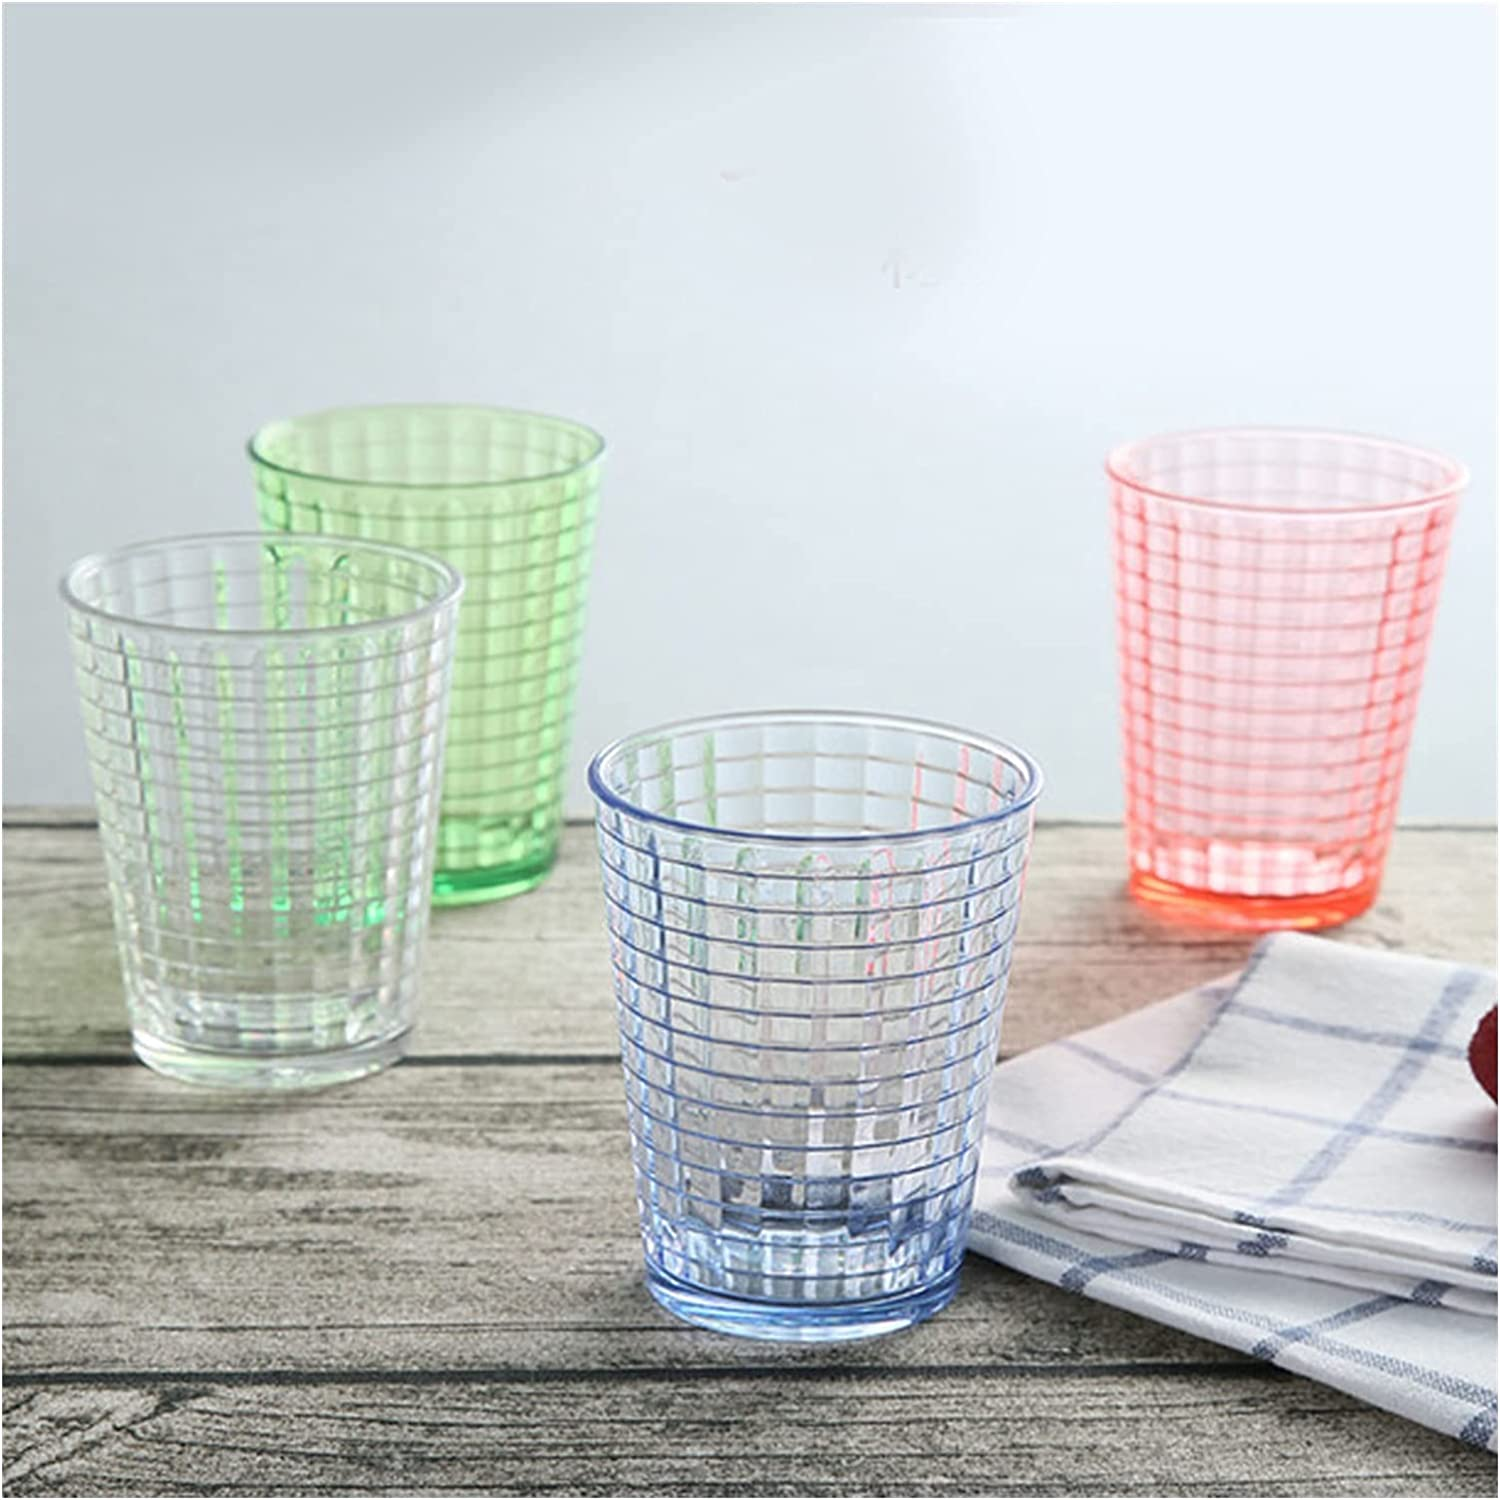 Mugs 4pcs 150ml half Plastic List price Cup Drink Stackable Gla Glasses Drinking